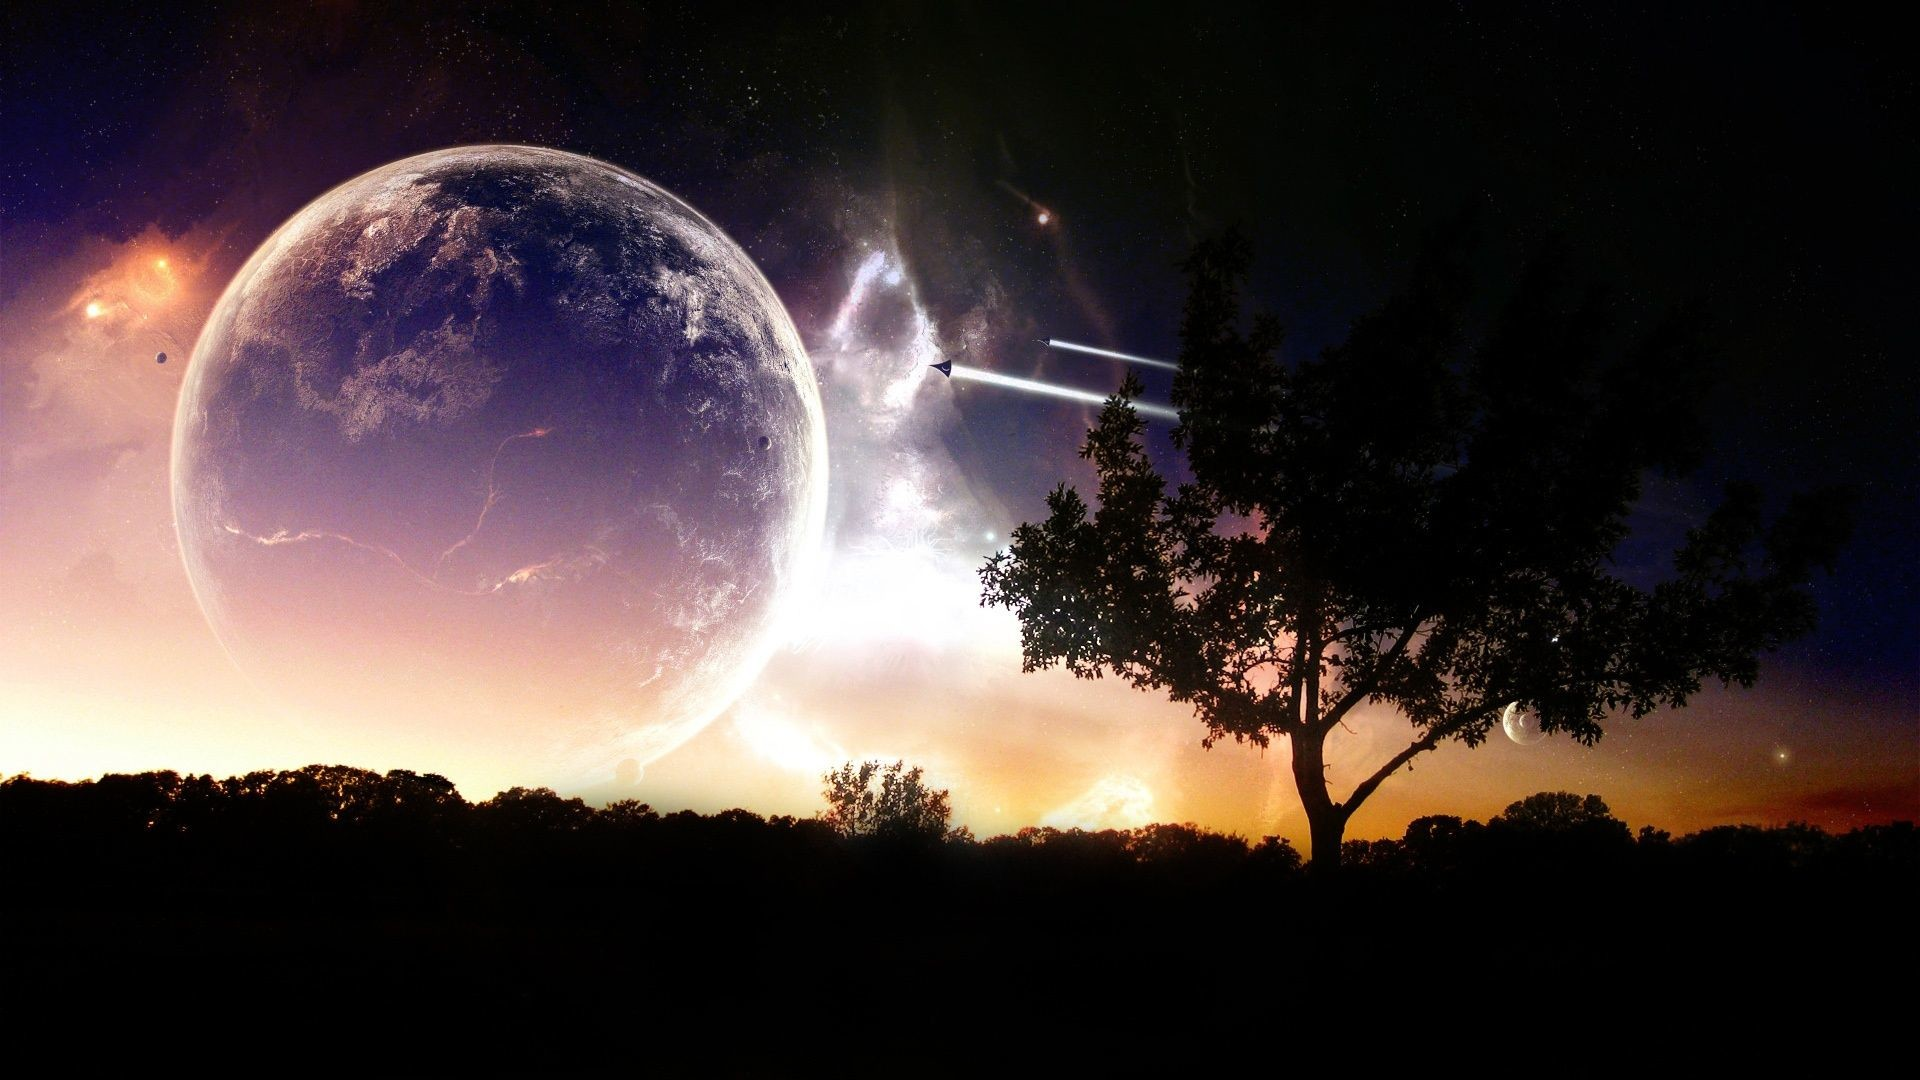 Res: 1920x1080, universe images hd - Google Search